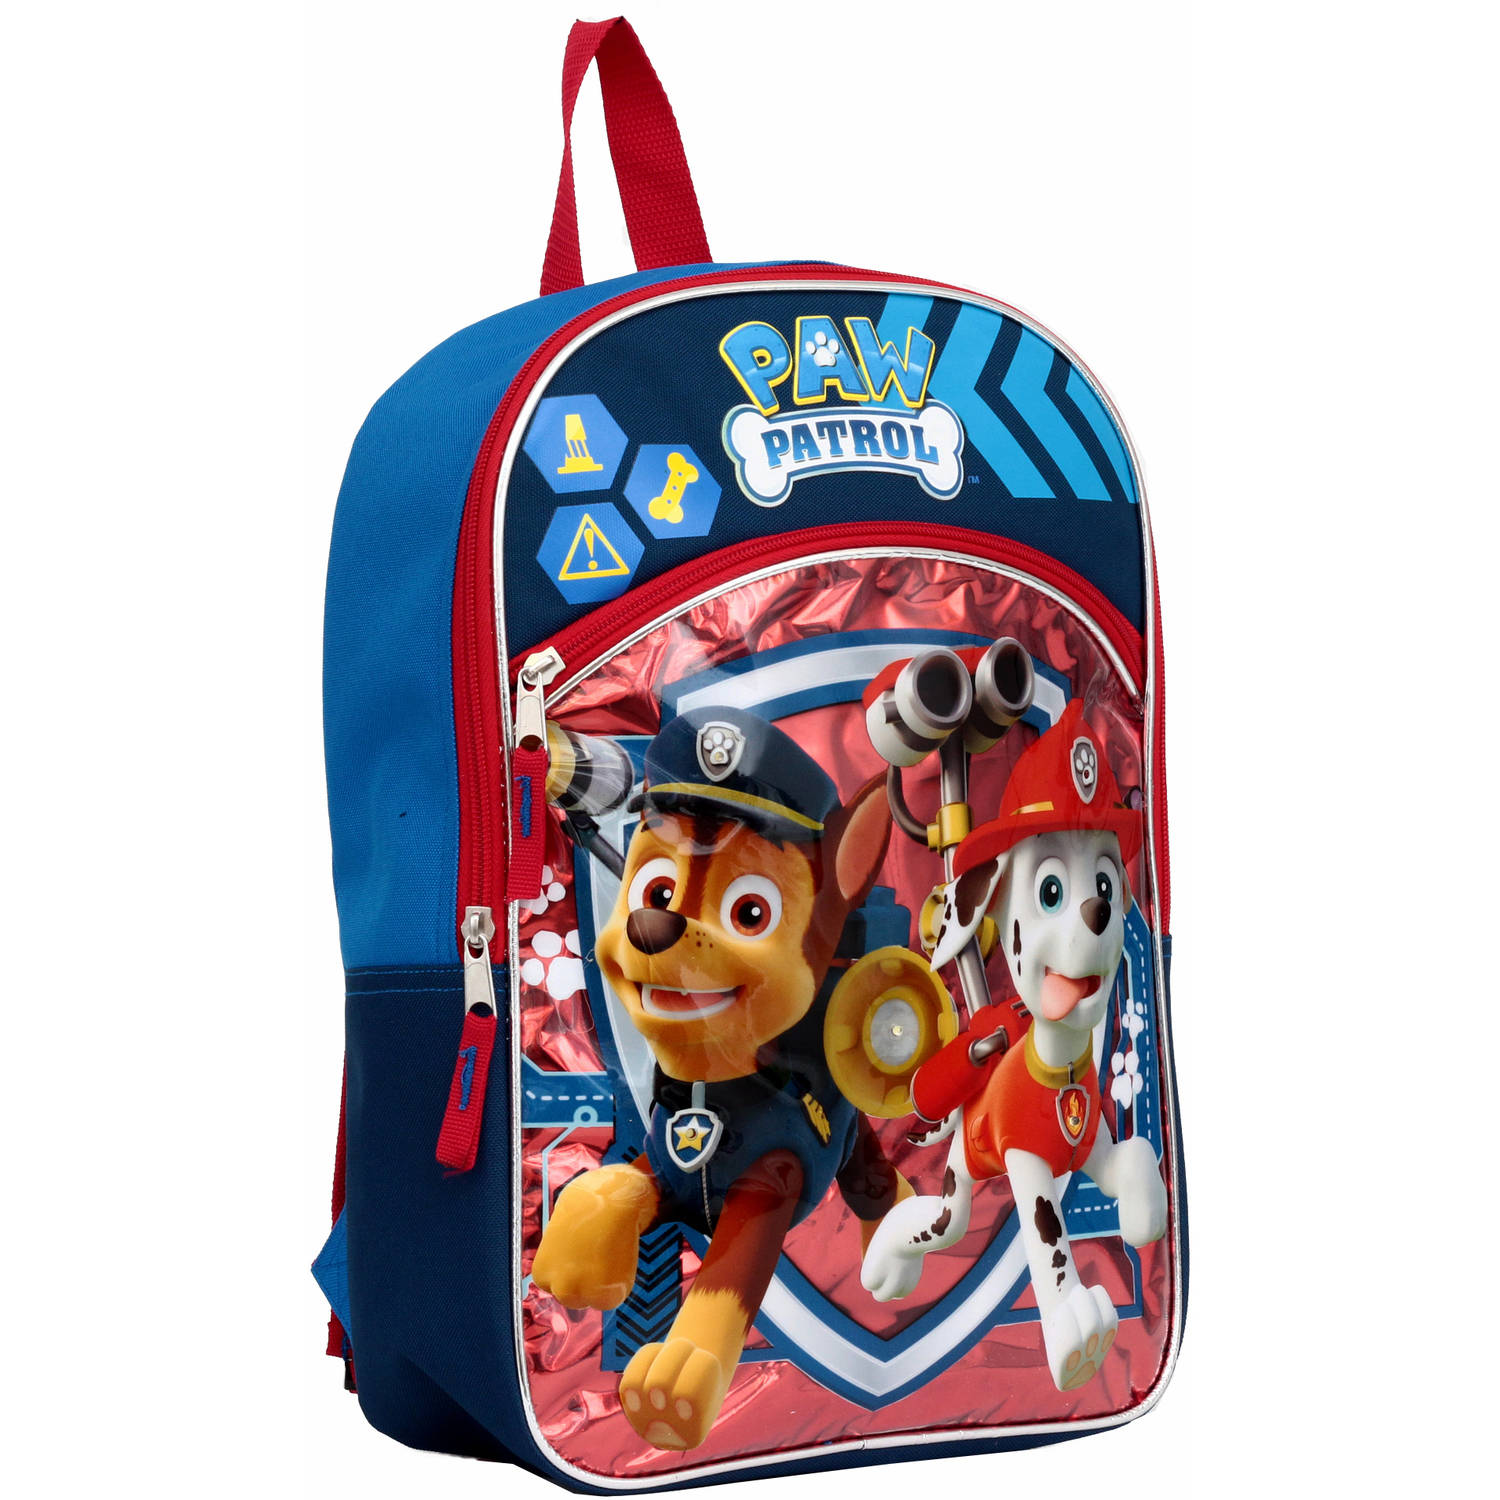 "Paw Patrol Chase and Marshall Light up 14"" Backpack"